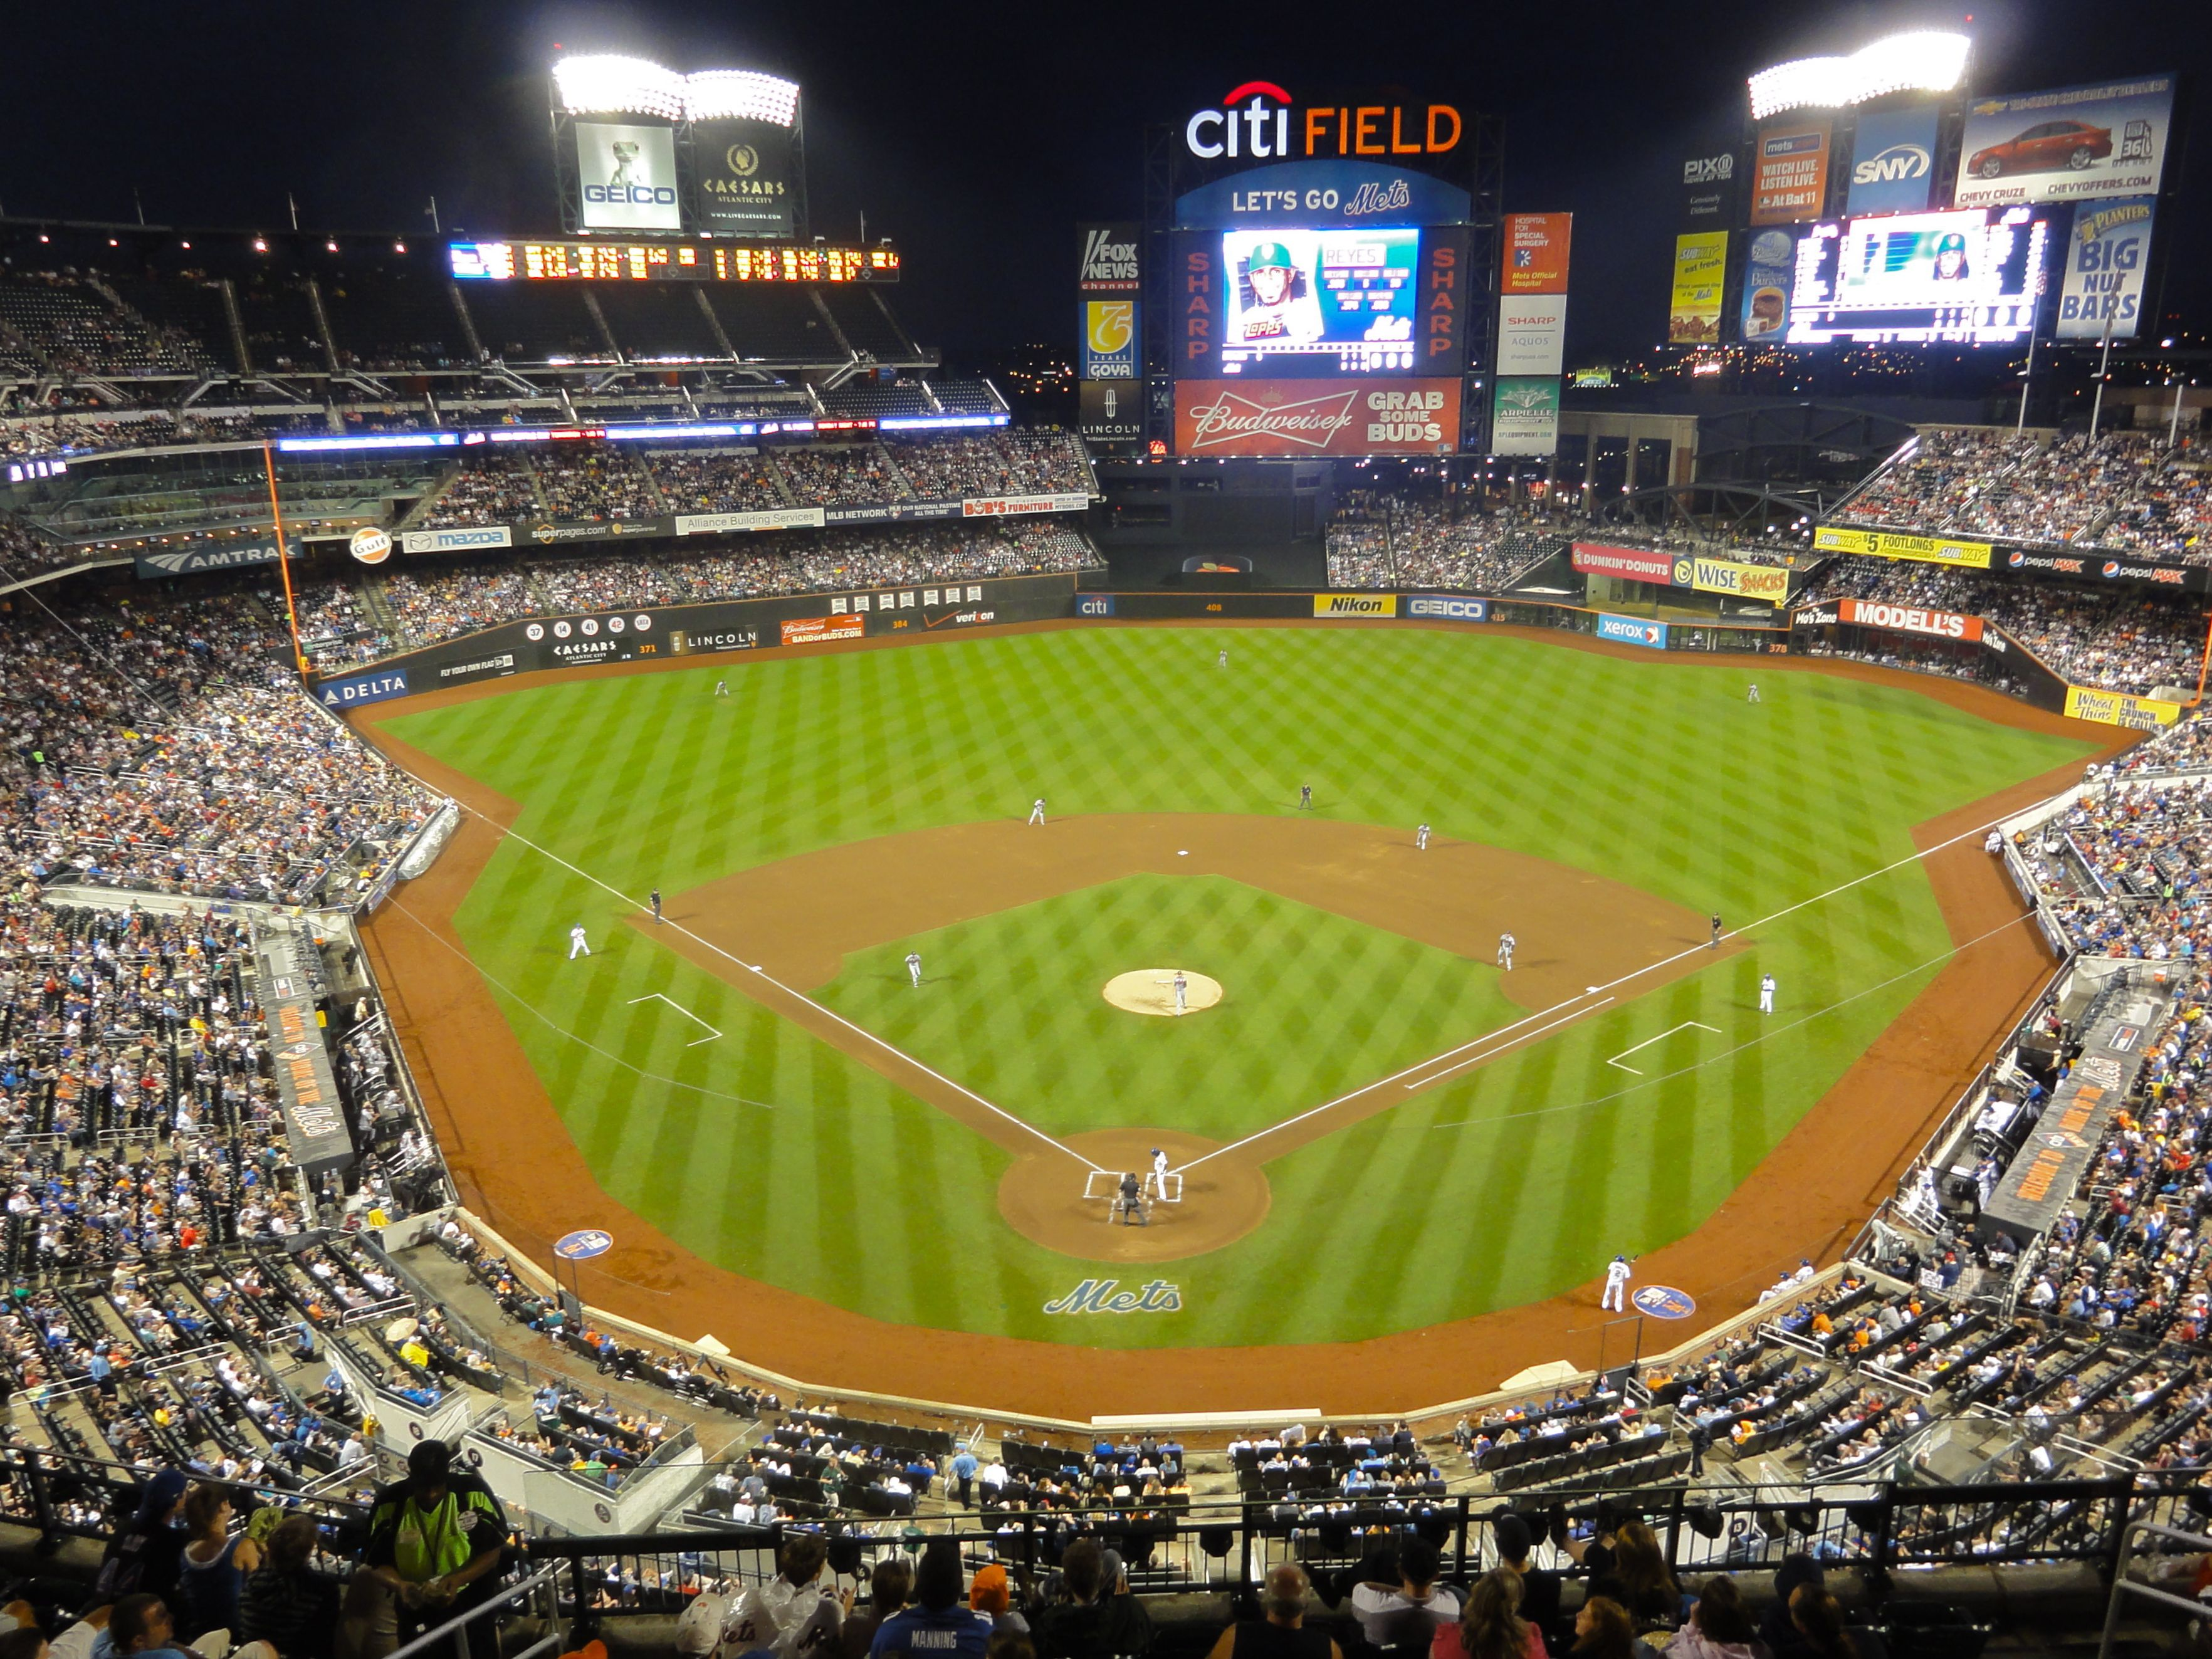 Nl east citi field home of the new york mets check